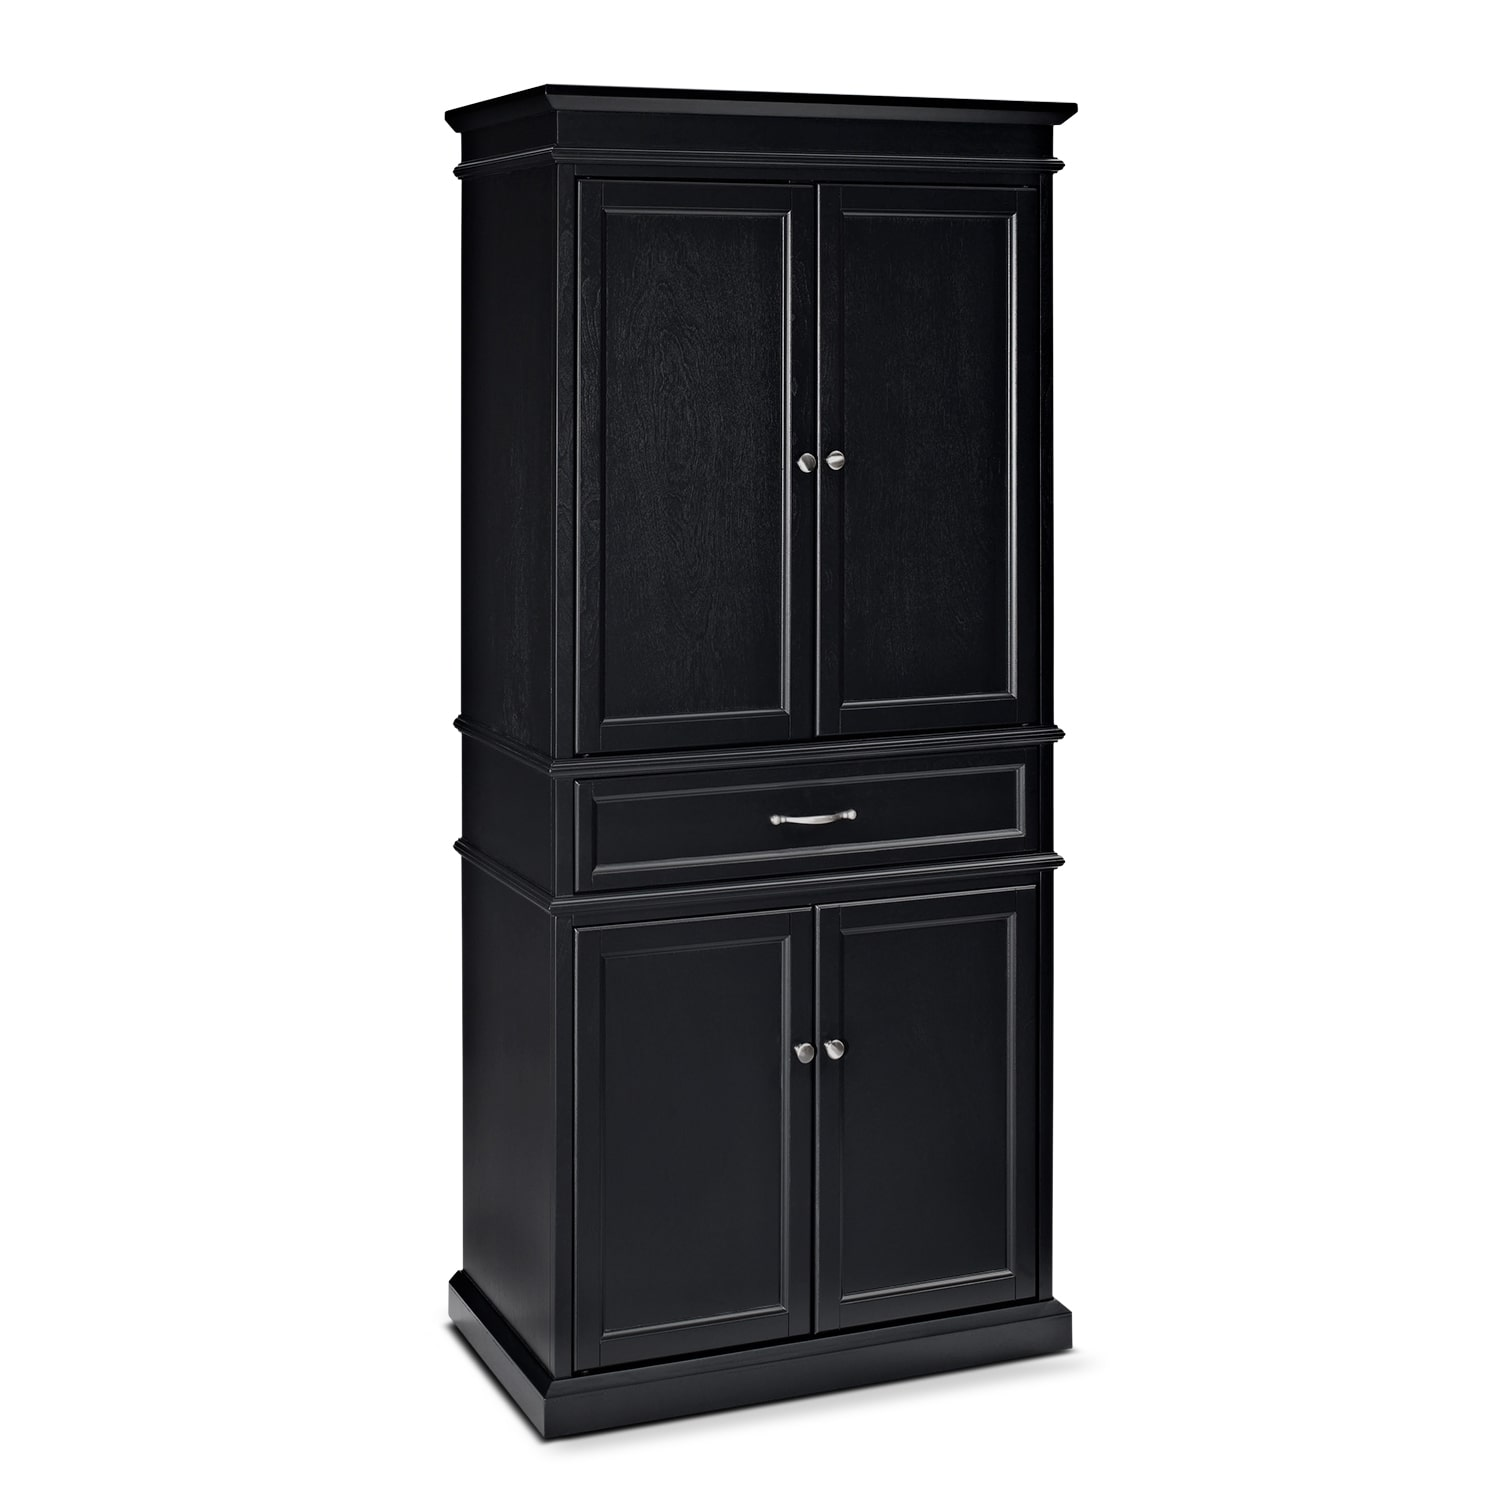 Dining Room Furniture - Midway Pantry - Black